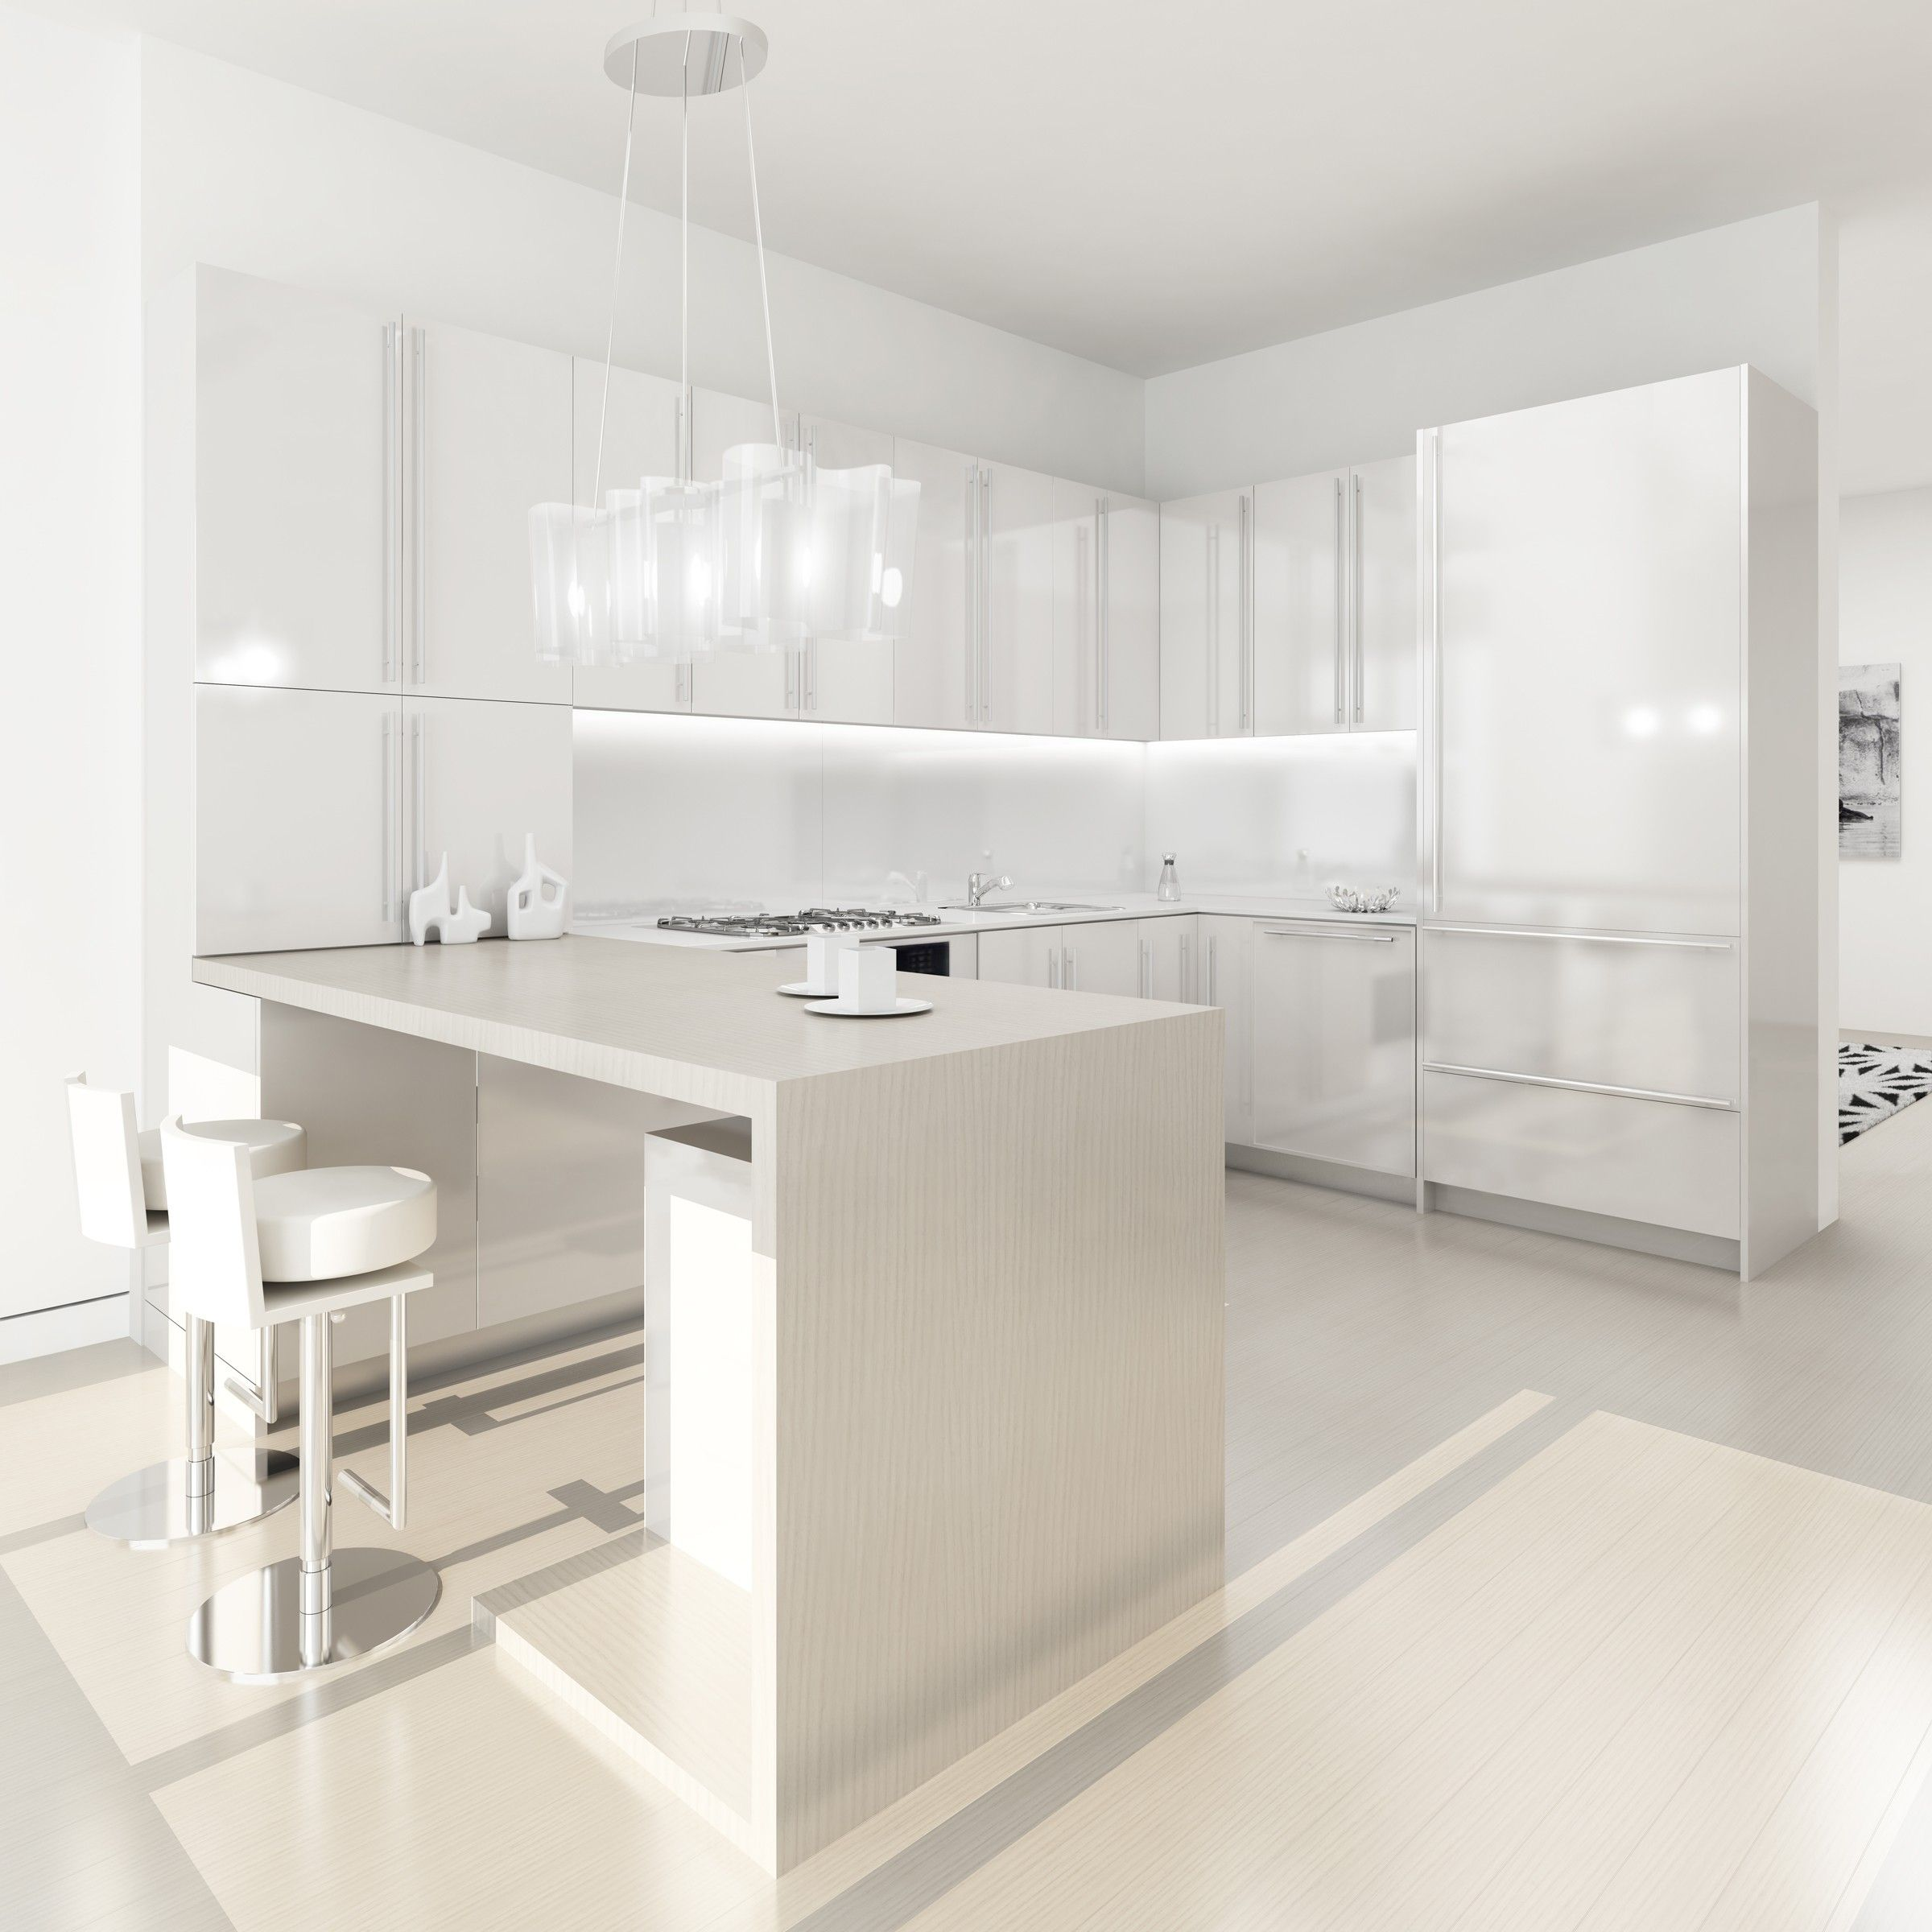 30+ Modern White Kitchen Design Ideas and Inspiration